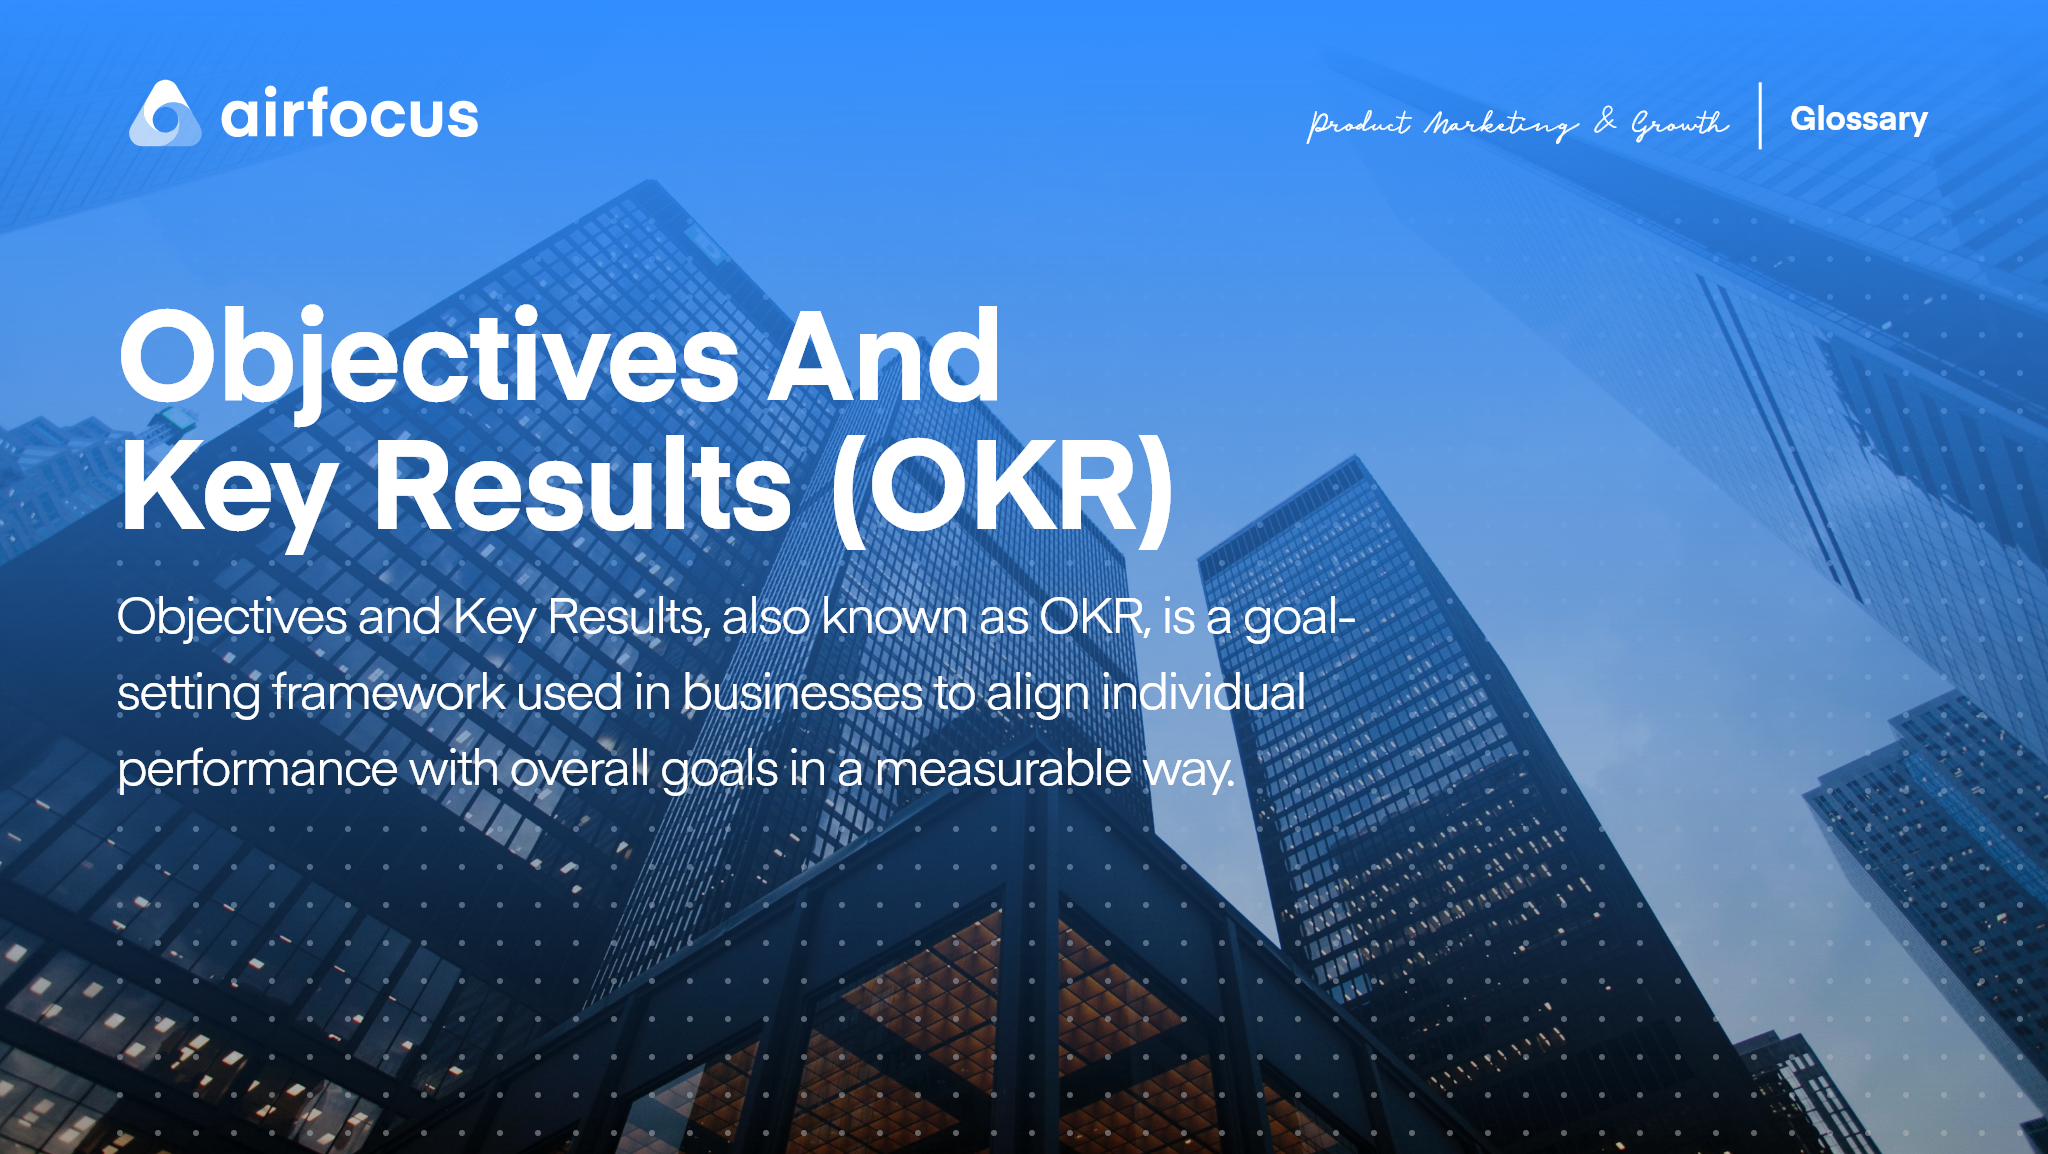 What are Objectives and Key Results